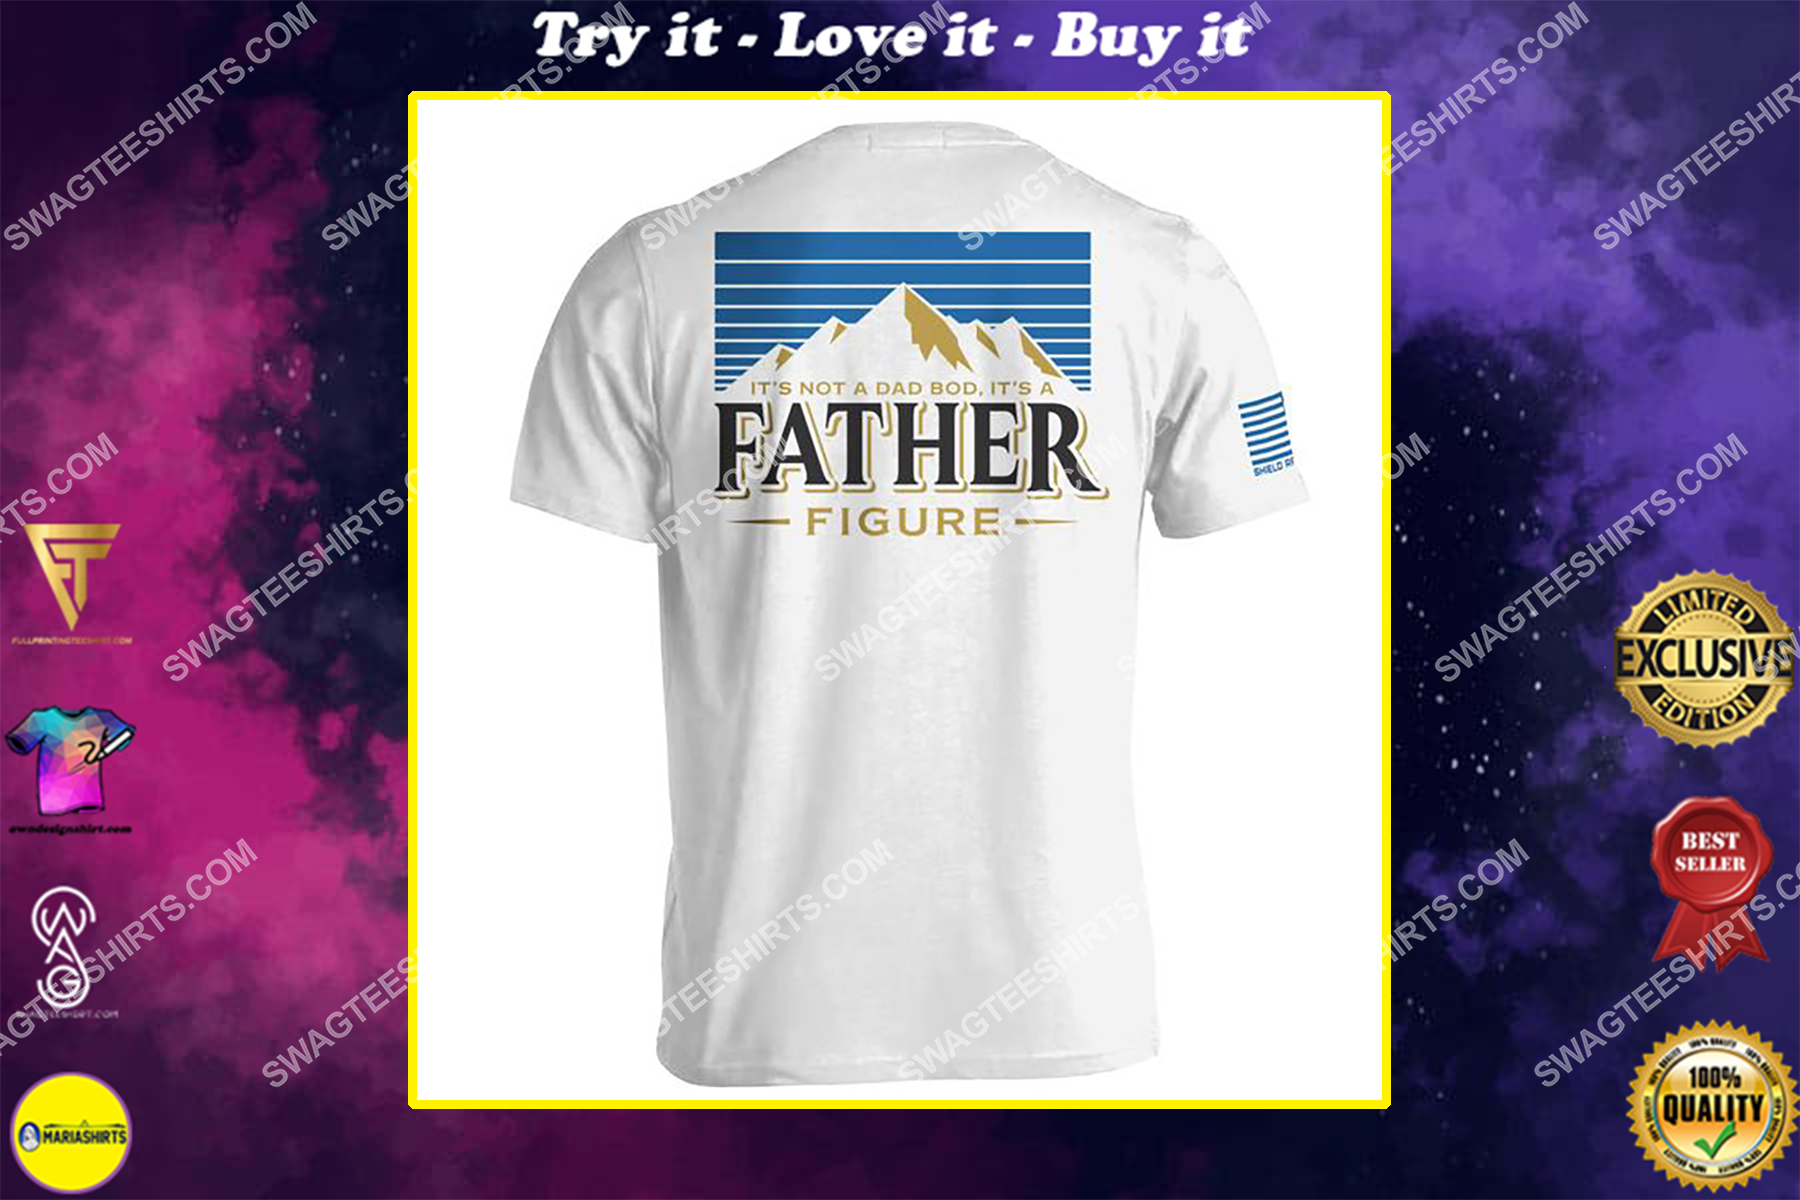 fathers day its not a dad bod its a father figure shirt